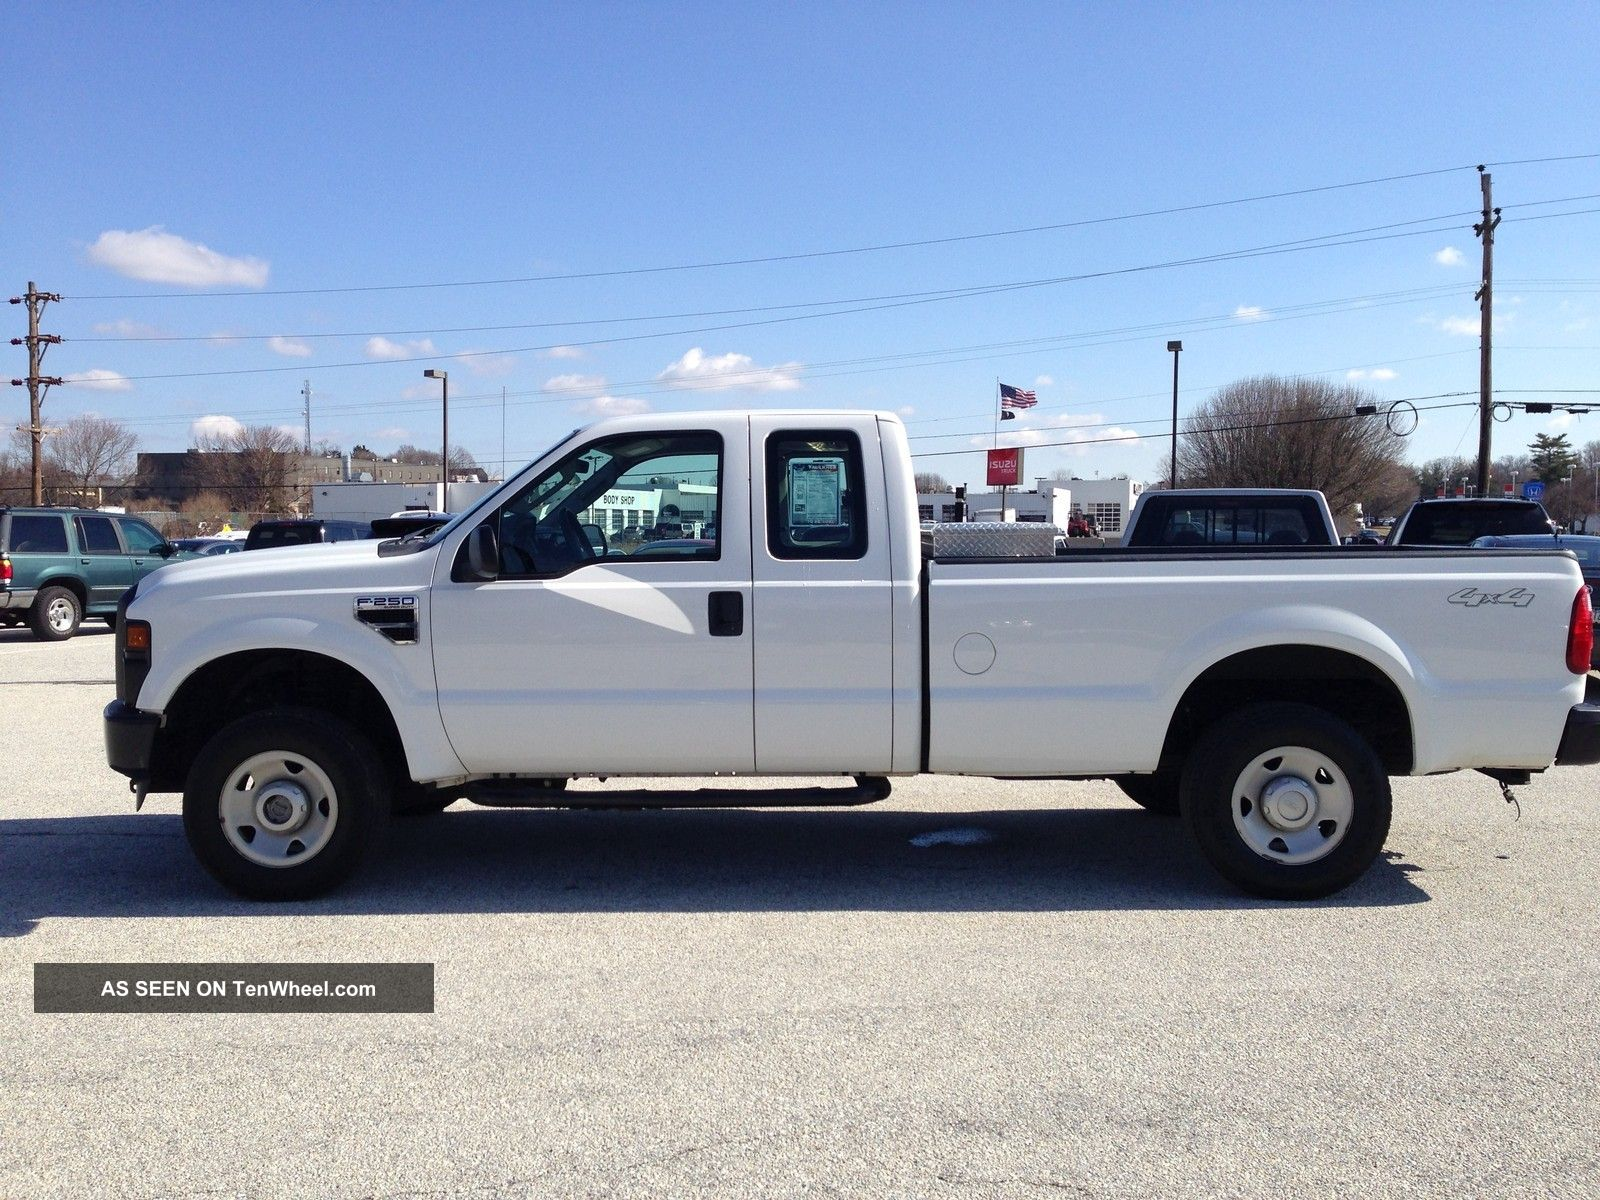 Ford F250 Bed 28 Images 2002 Ford F250 8ft Bed For Sale Autos Post 2002 Ford F250 8ft Bed